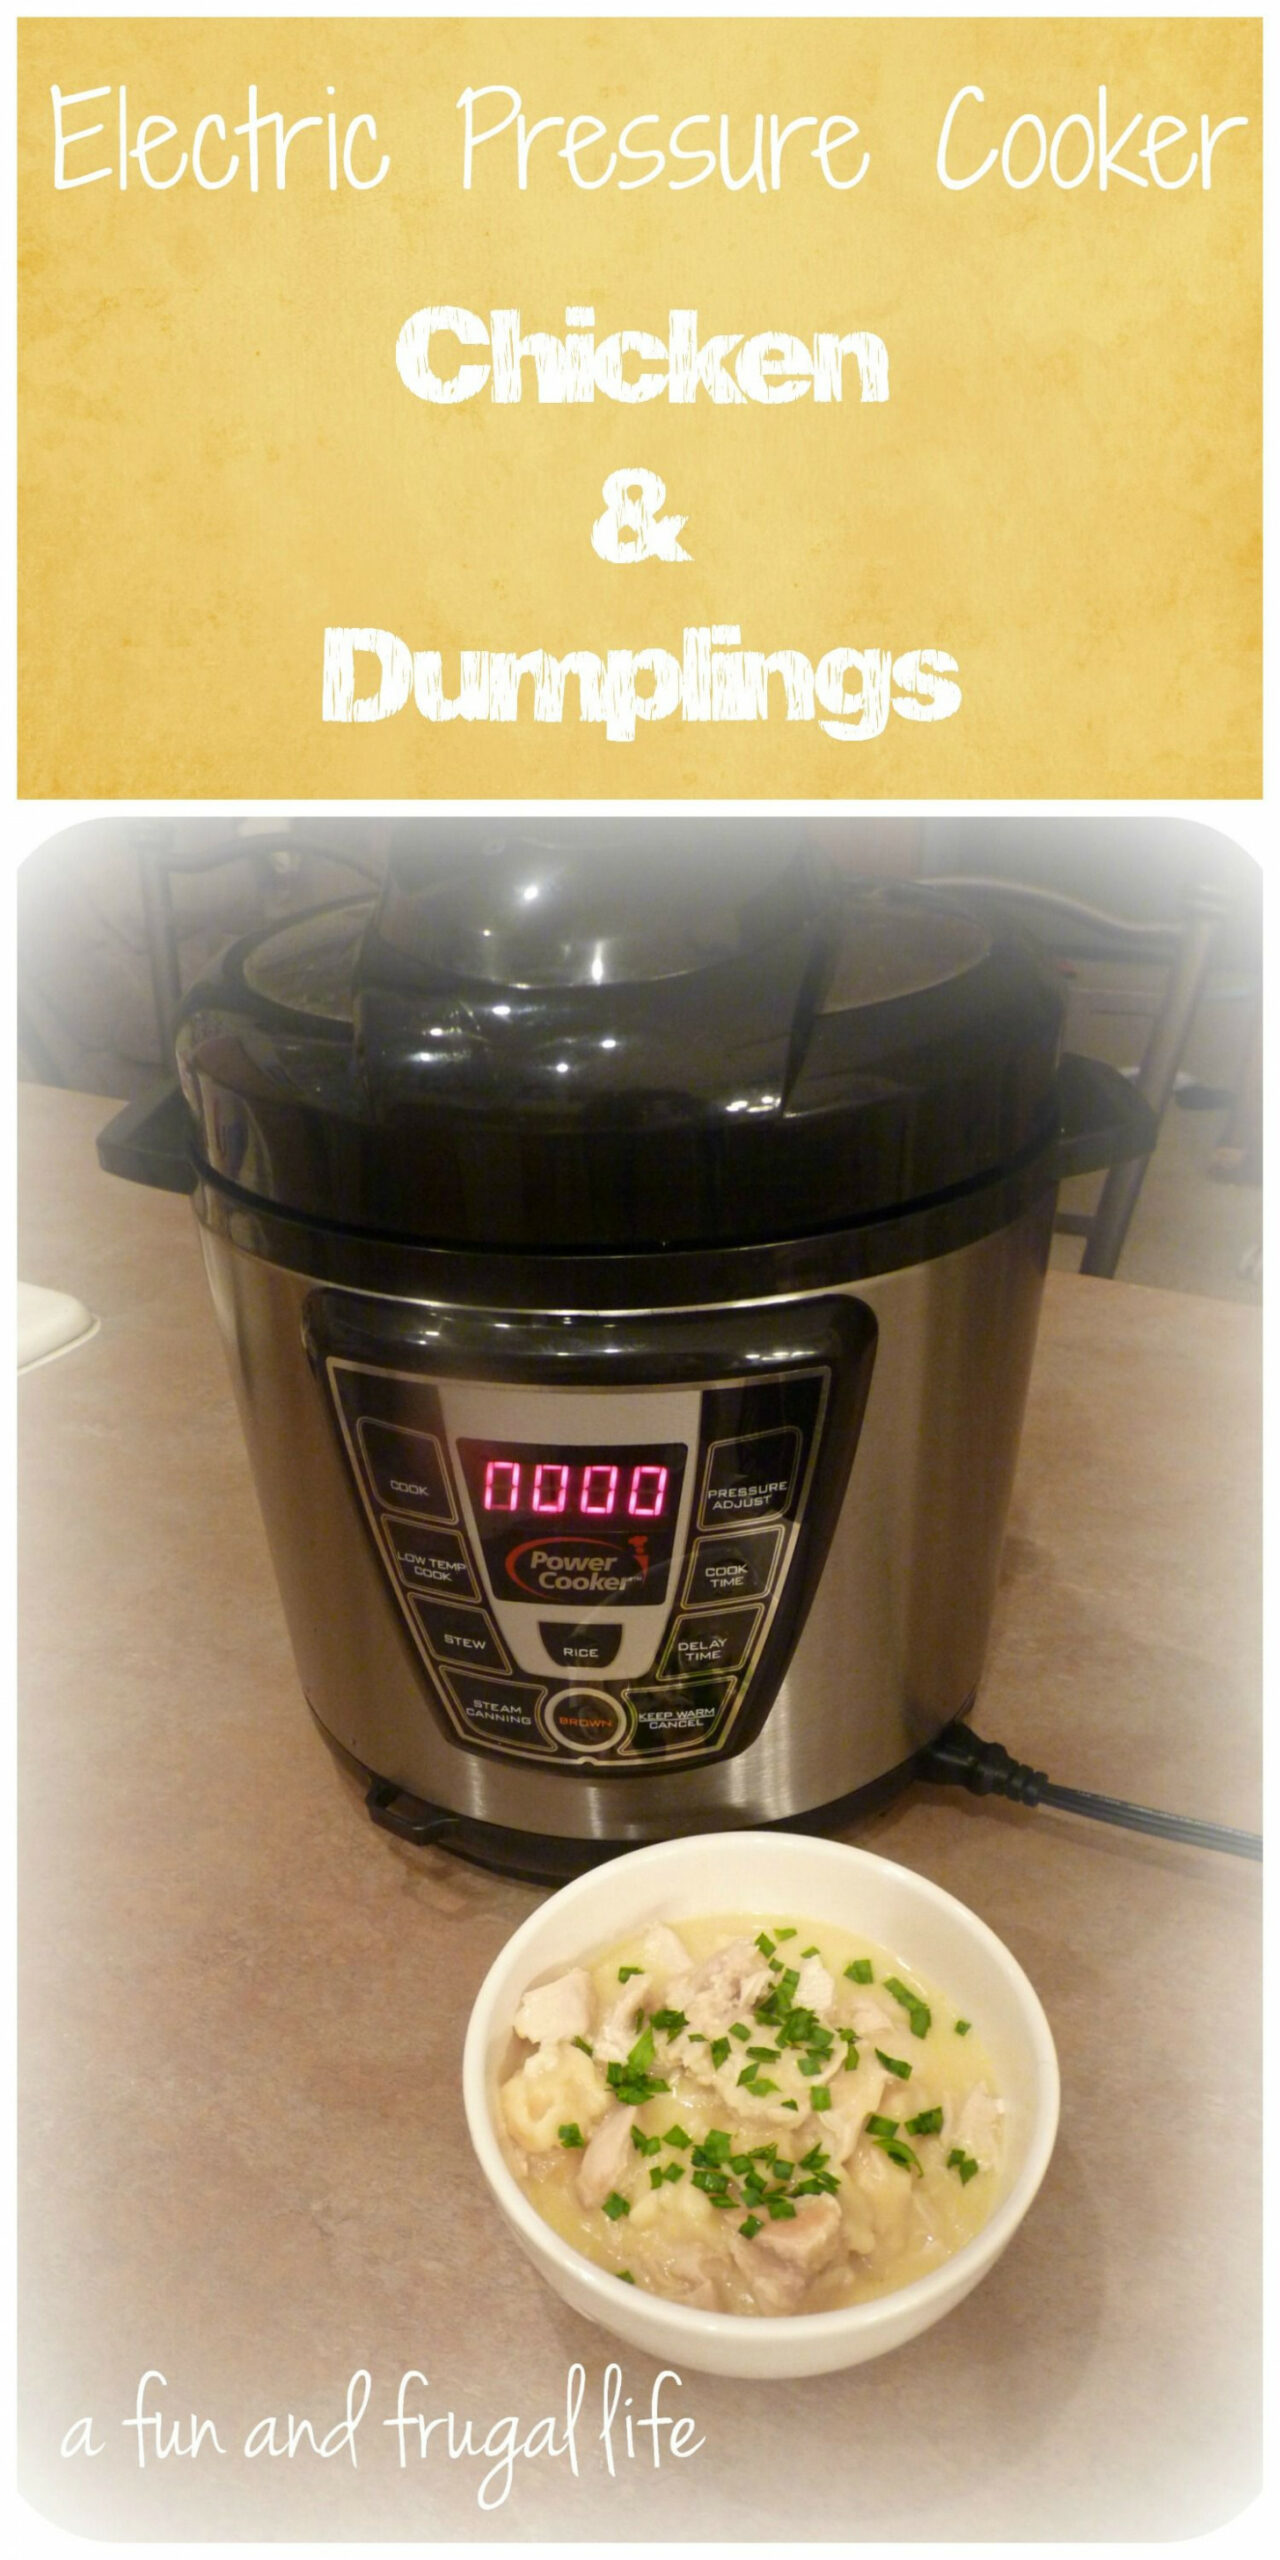 Electric Pressure Cooker ~ Chicken & Dumplings | Pressure ..